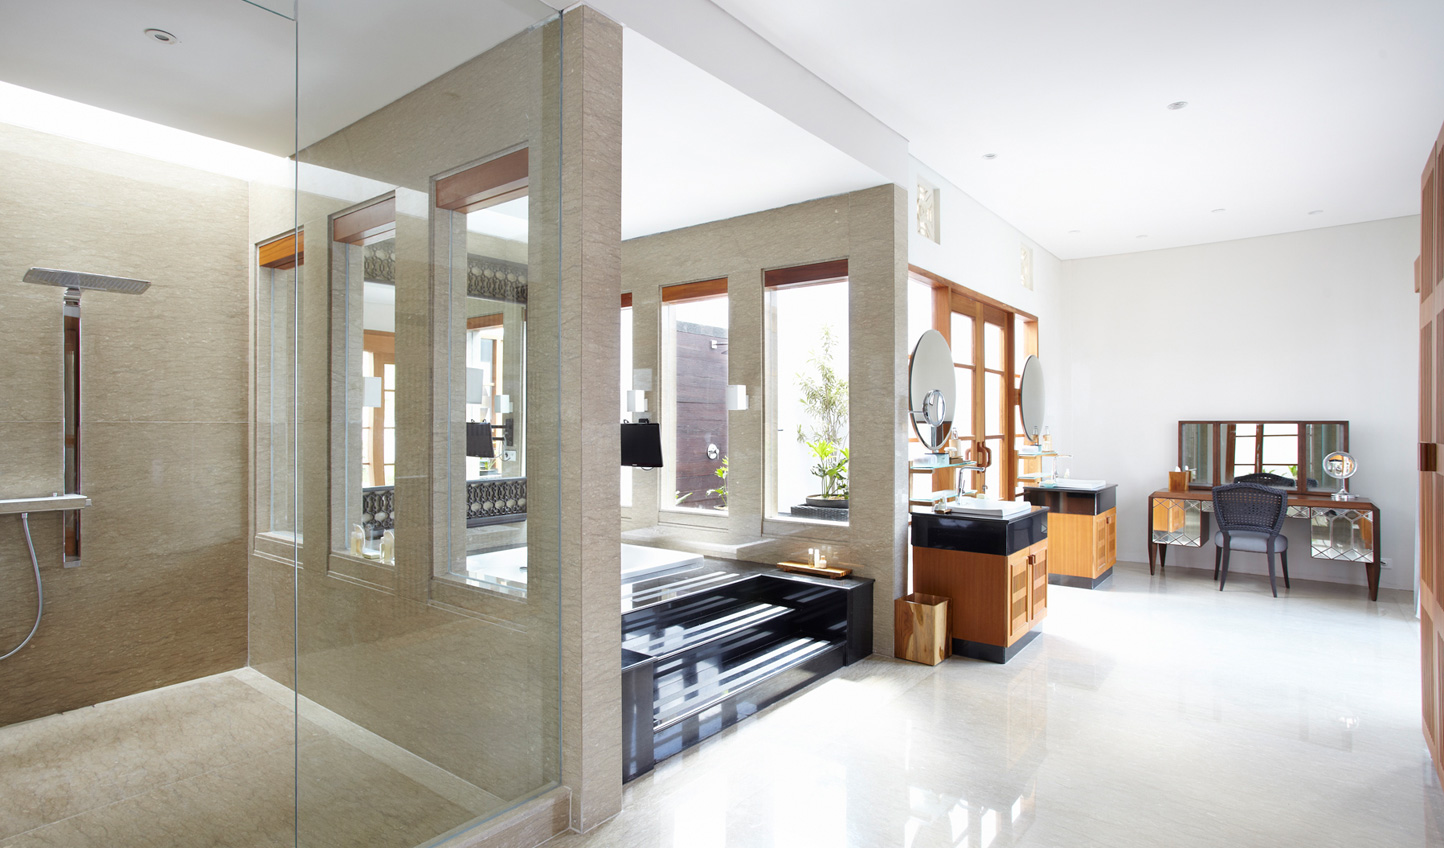 Balinese style gives way to slick modern bathrooms